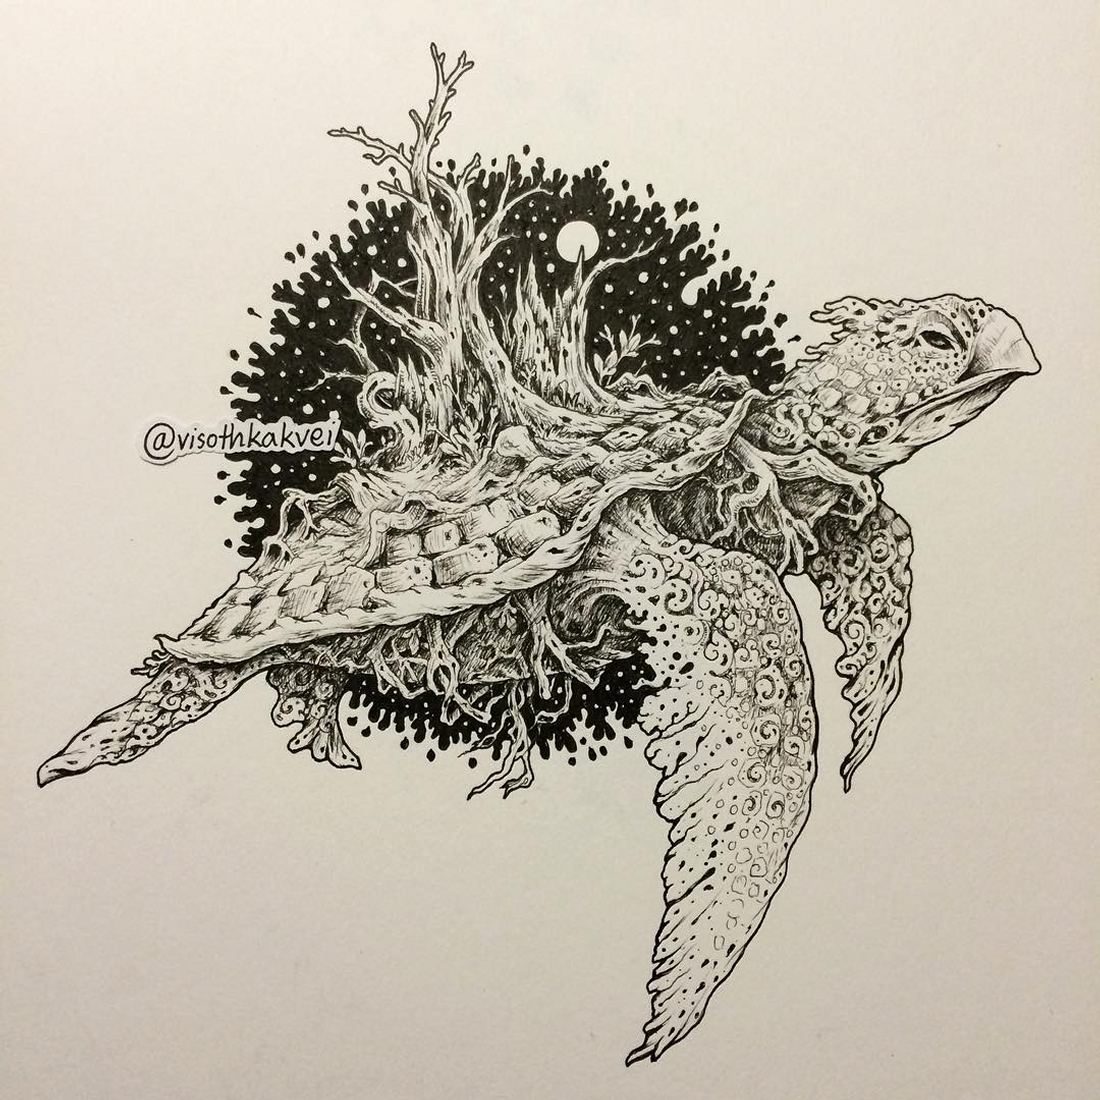 06-Midnight-Story-Turtle-Visoth-Kakvei-Color-and-Black-and-White-Dynamic-Doodles-www-designstack-co